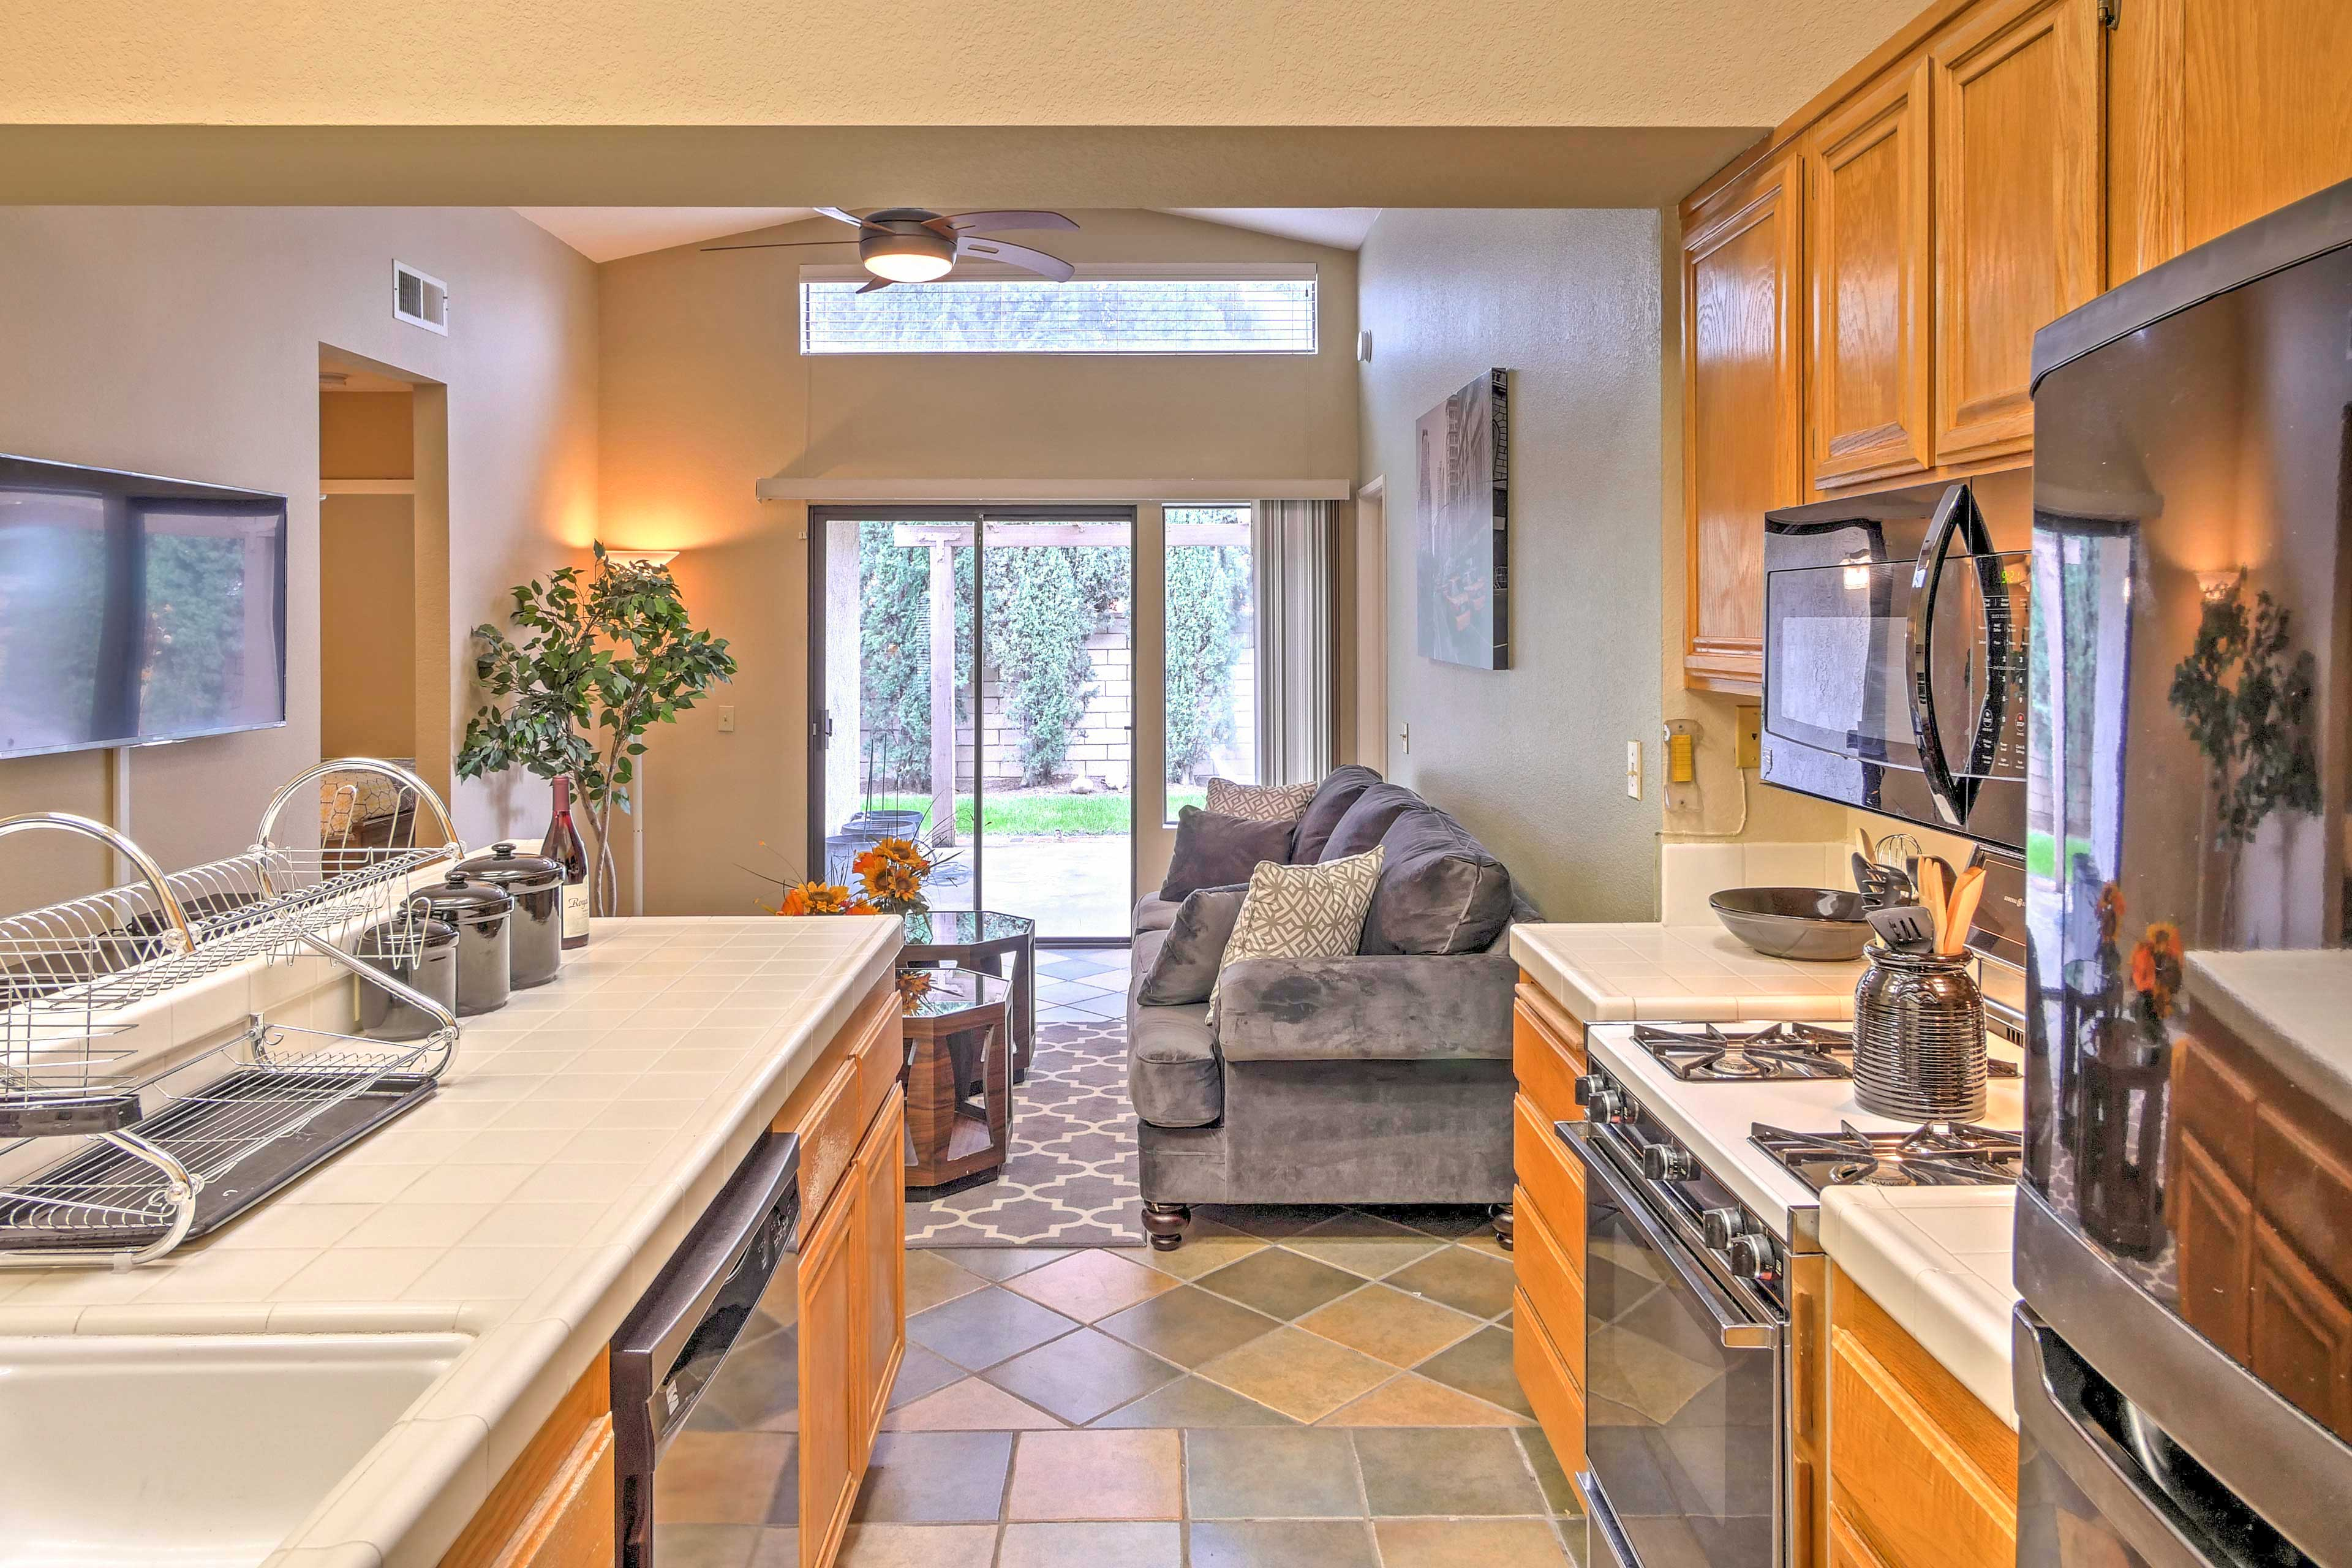 Cook in the fully equipped kitchen while watching TV or chatting with others.